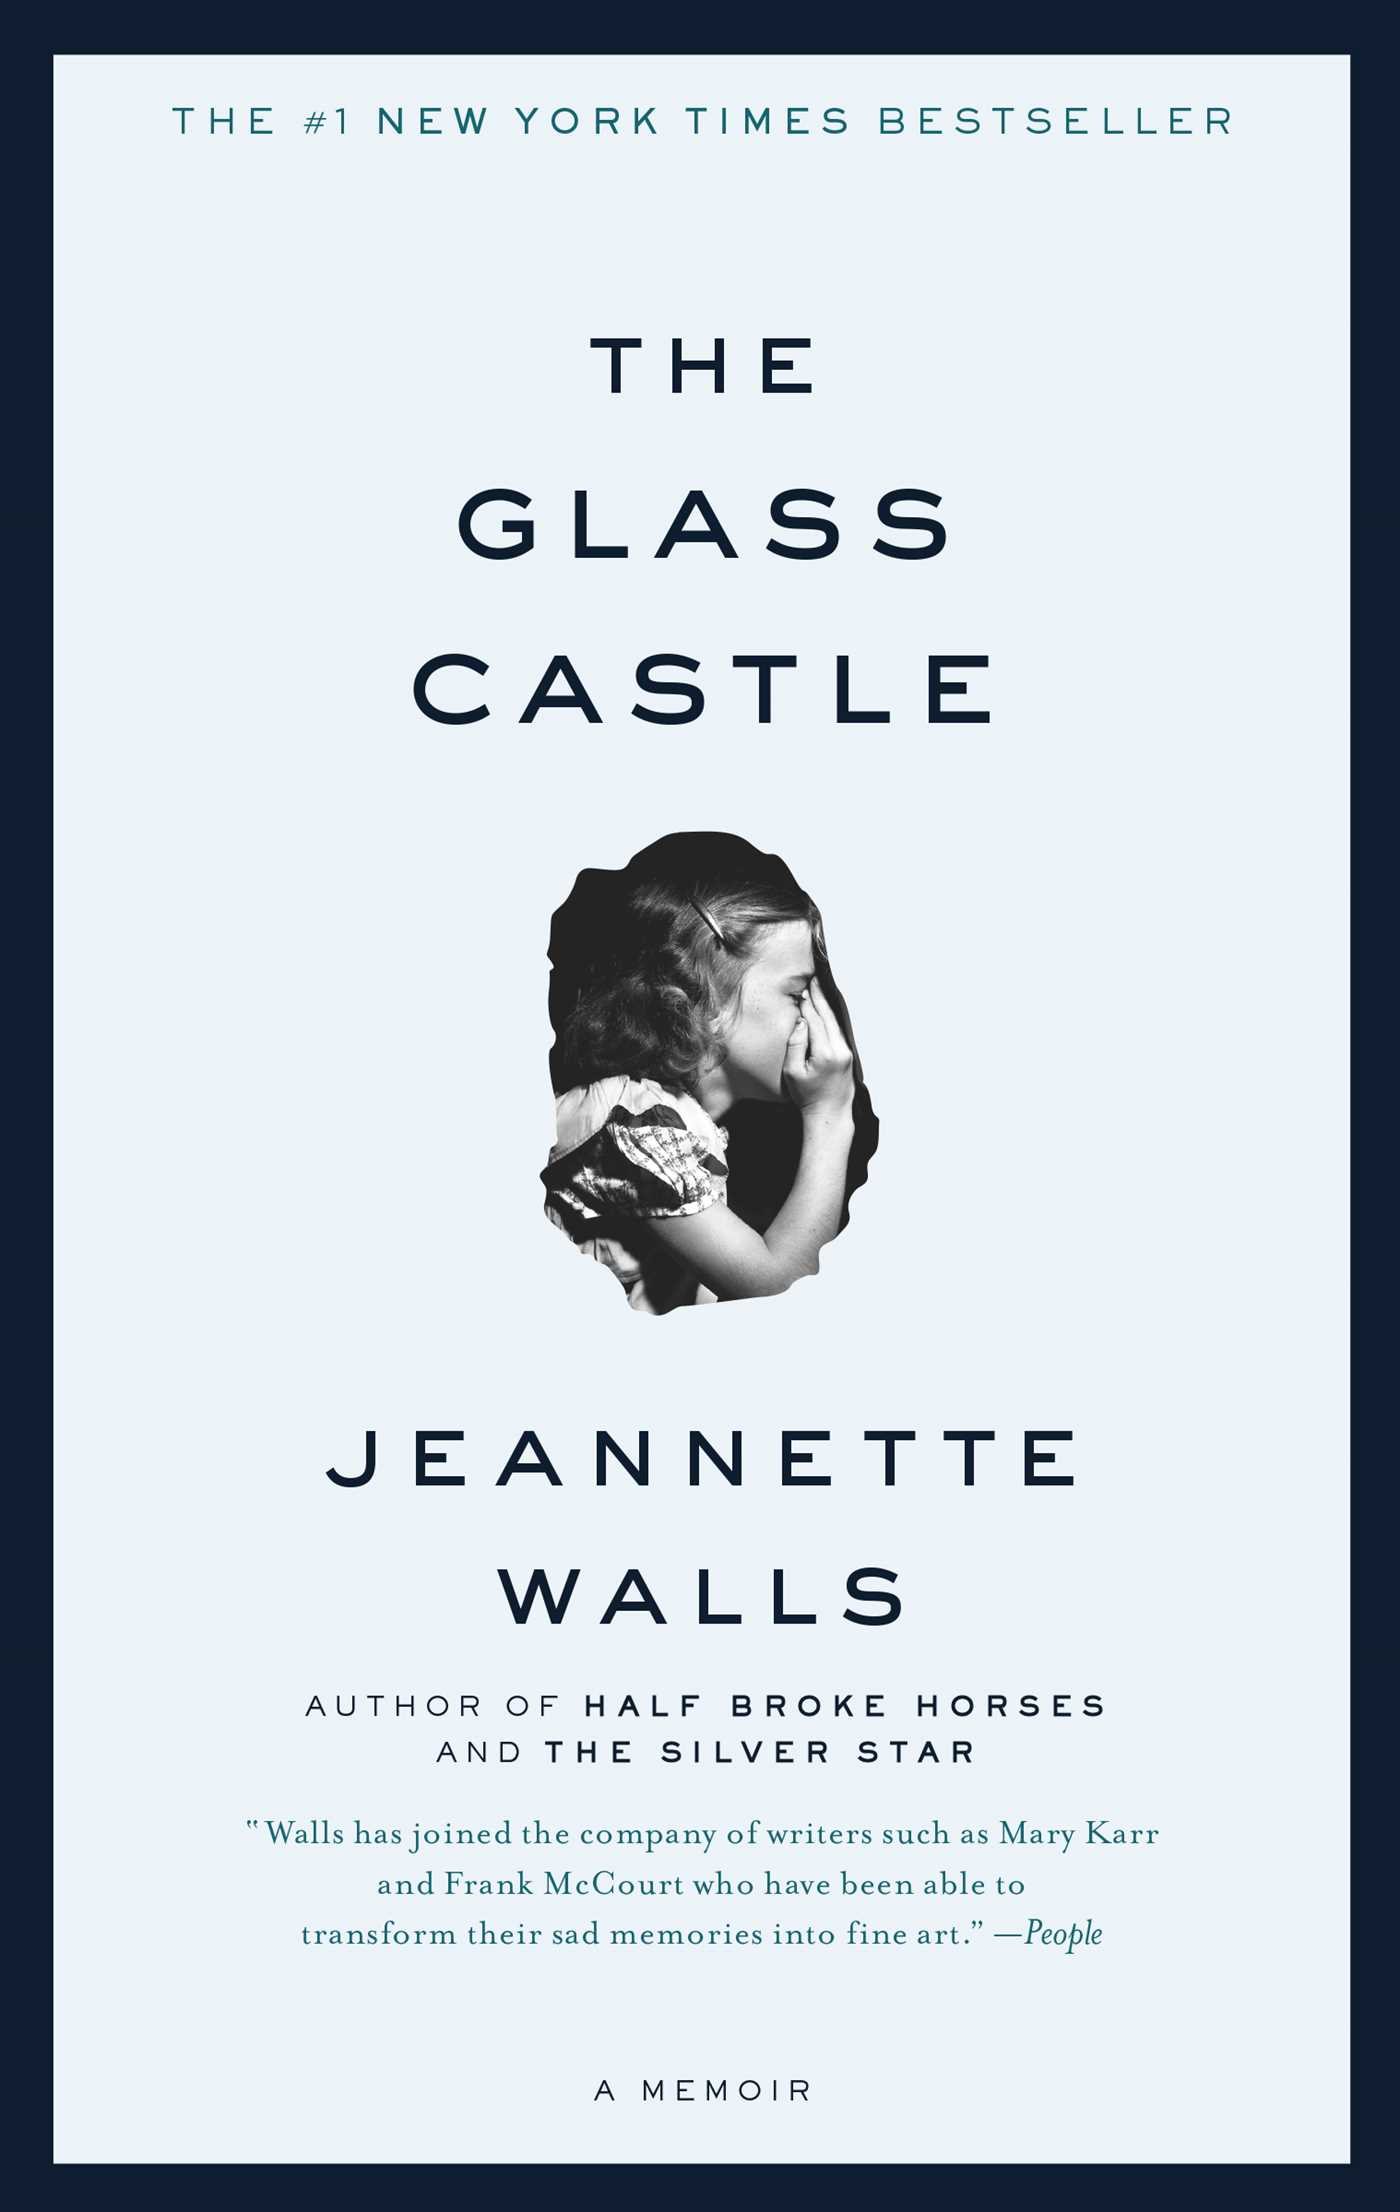 Glass-castle-9781416550600_hr